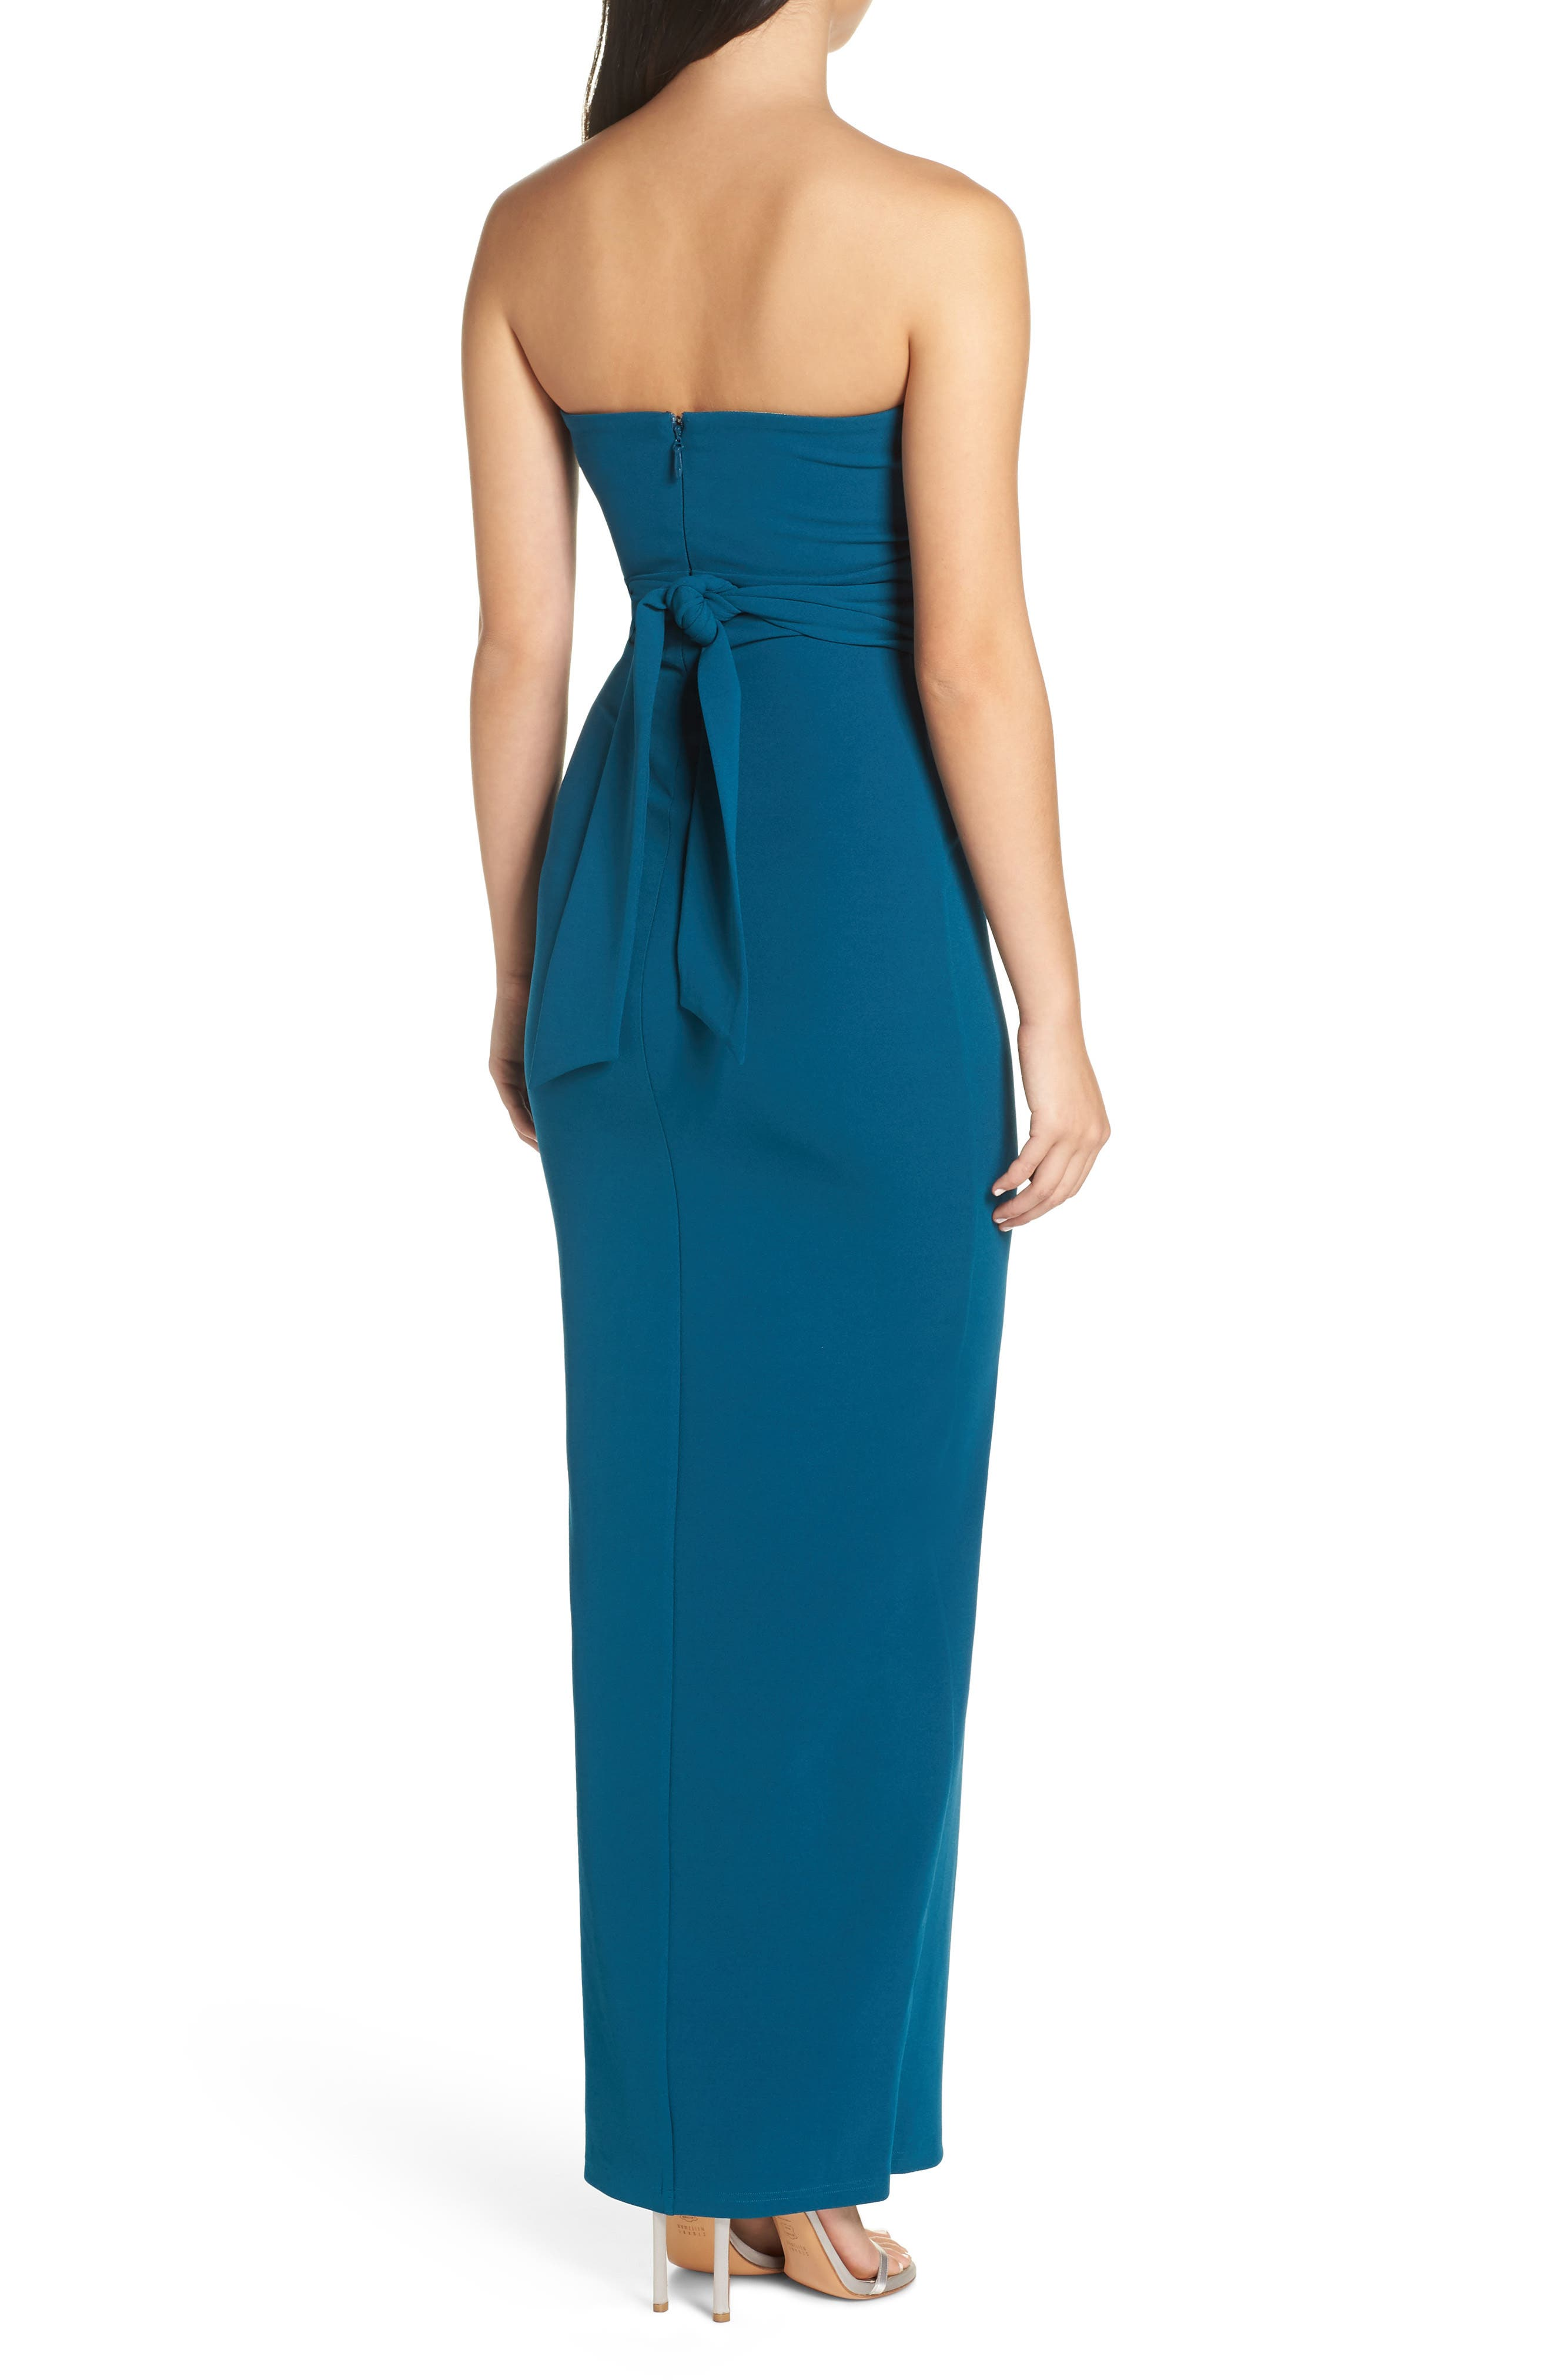 LULUS, Own the Night Strapless Maxi Dress, Alternate thumbnail 2, color, TURQUOISE